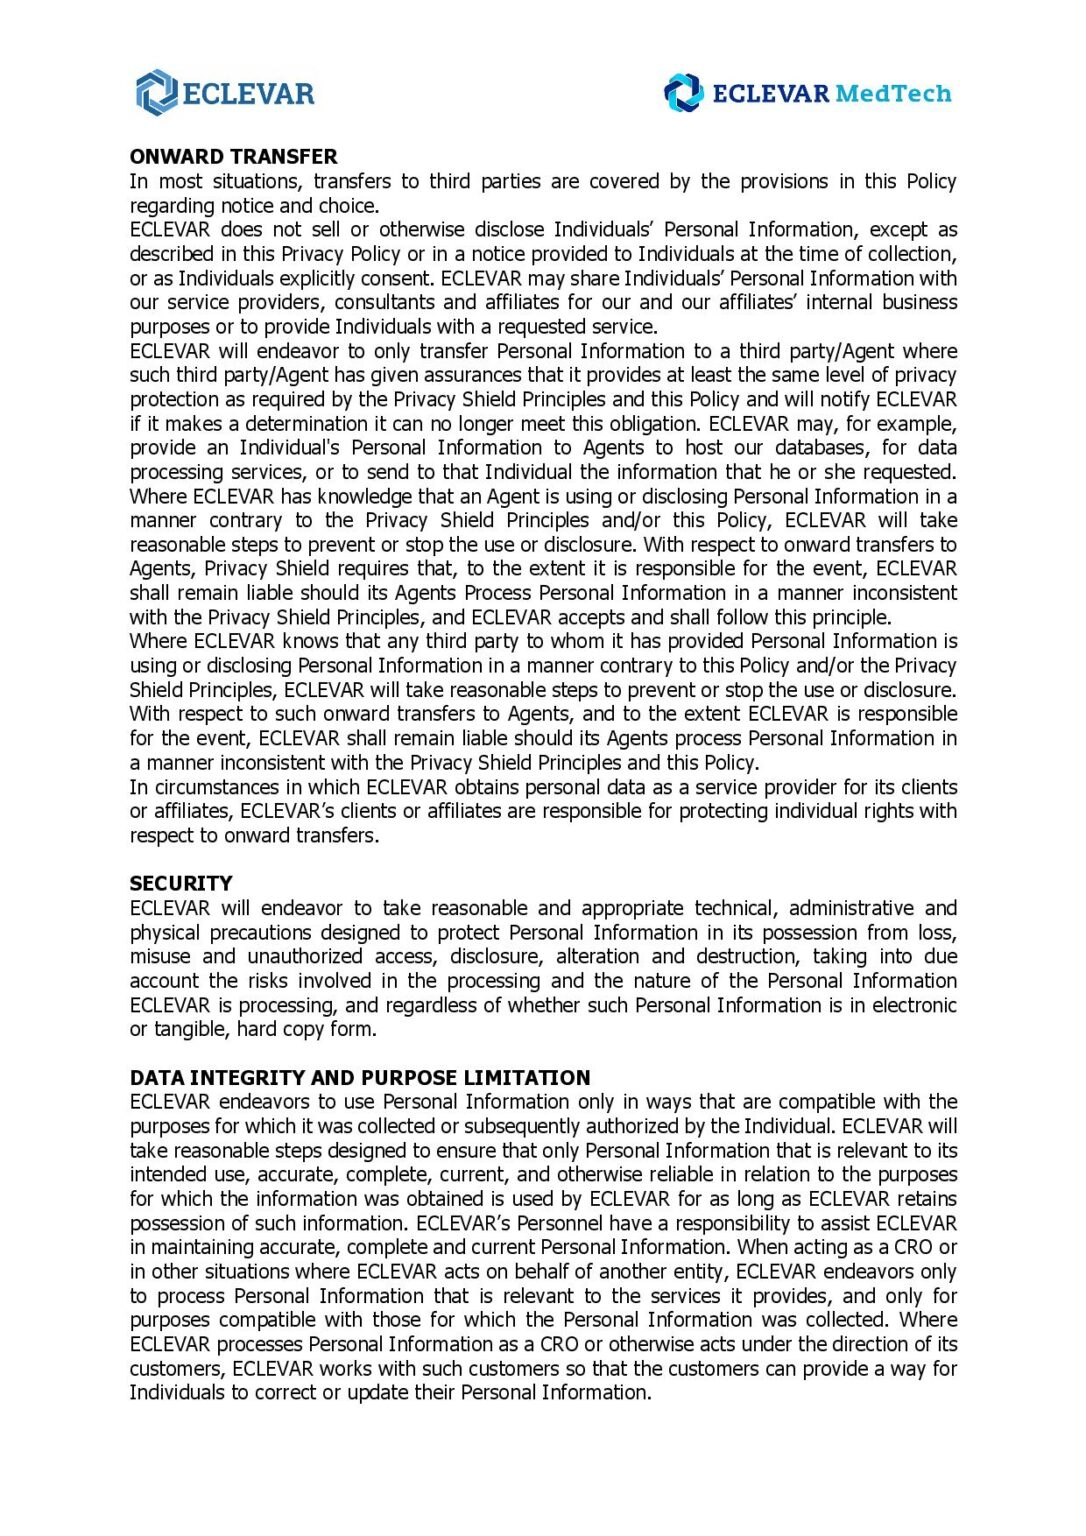 ECLEVAR PRIVACY 19 08 2020 _MedTech-page-013